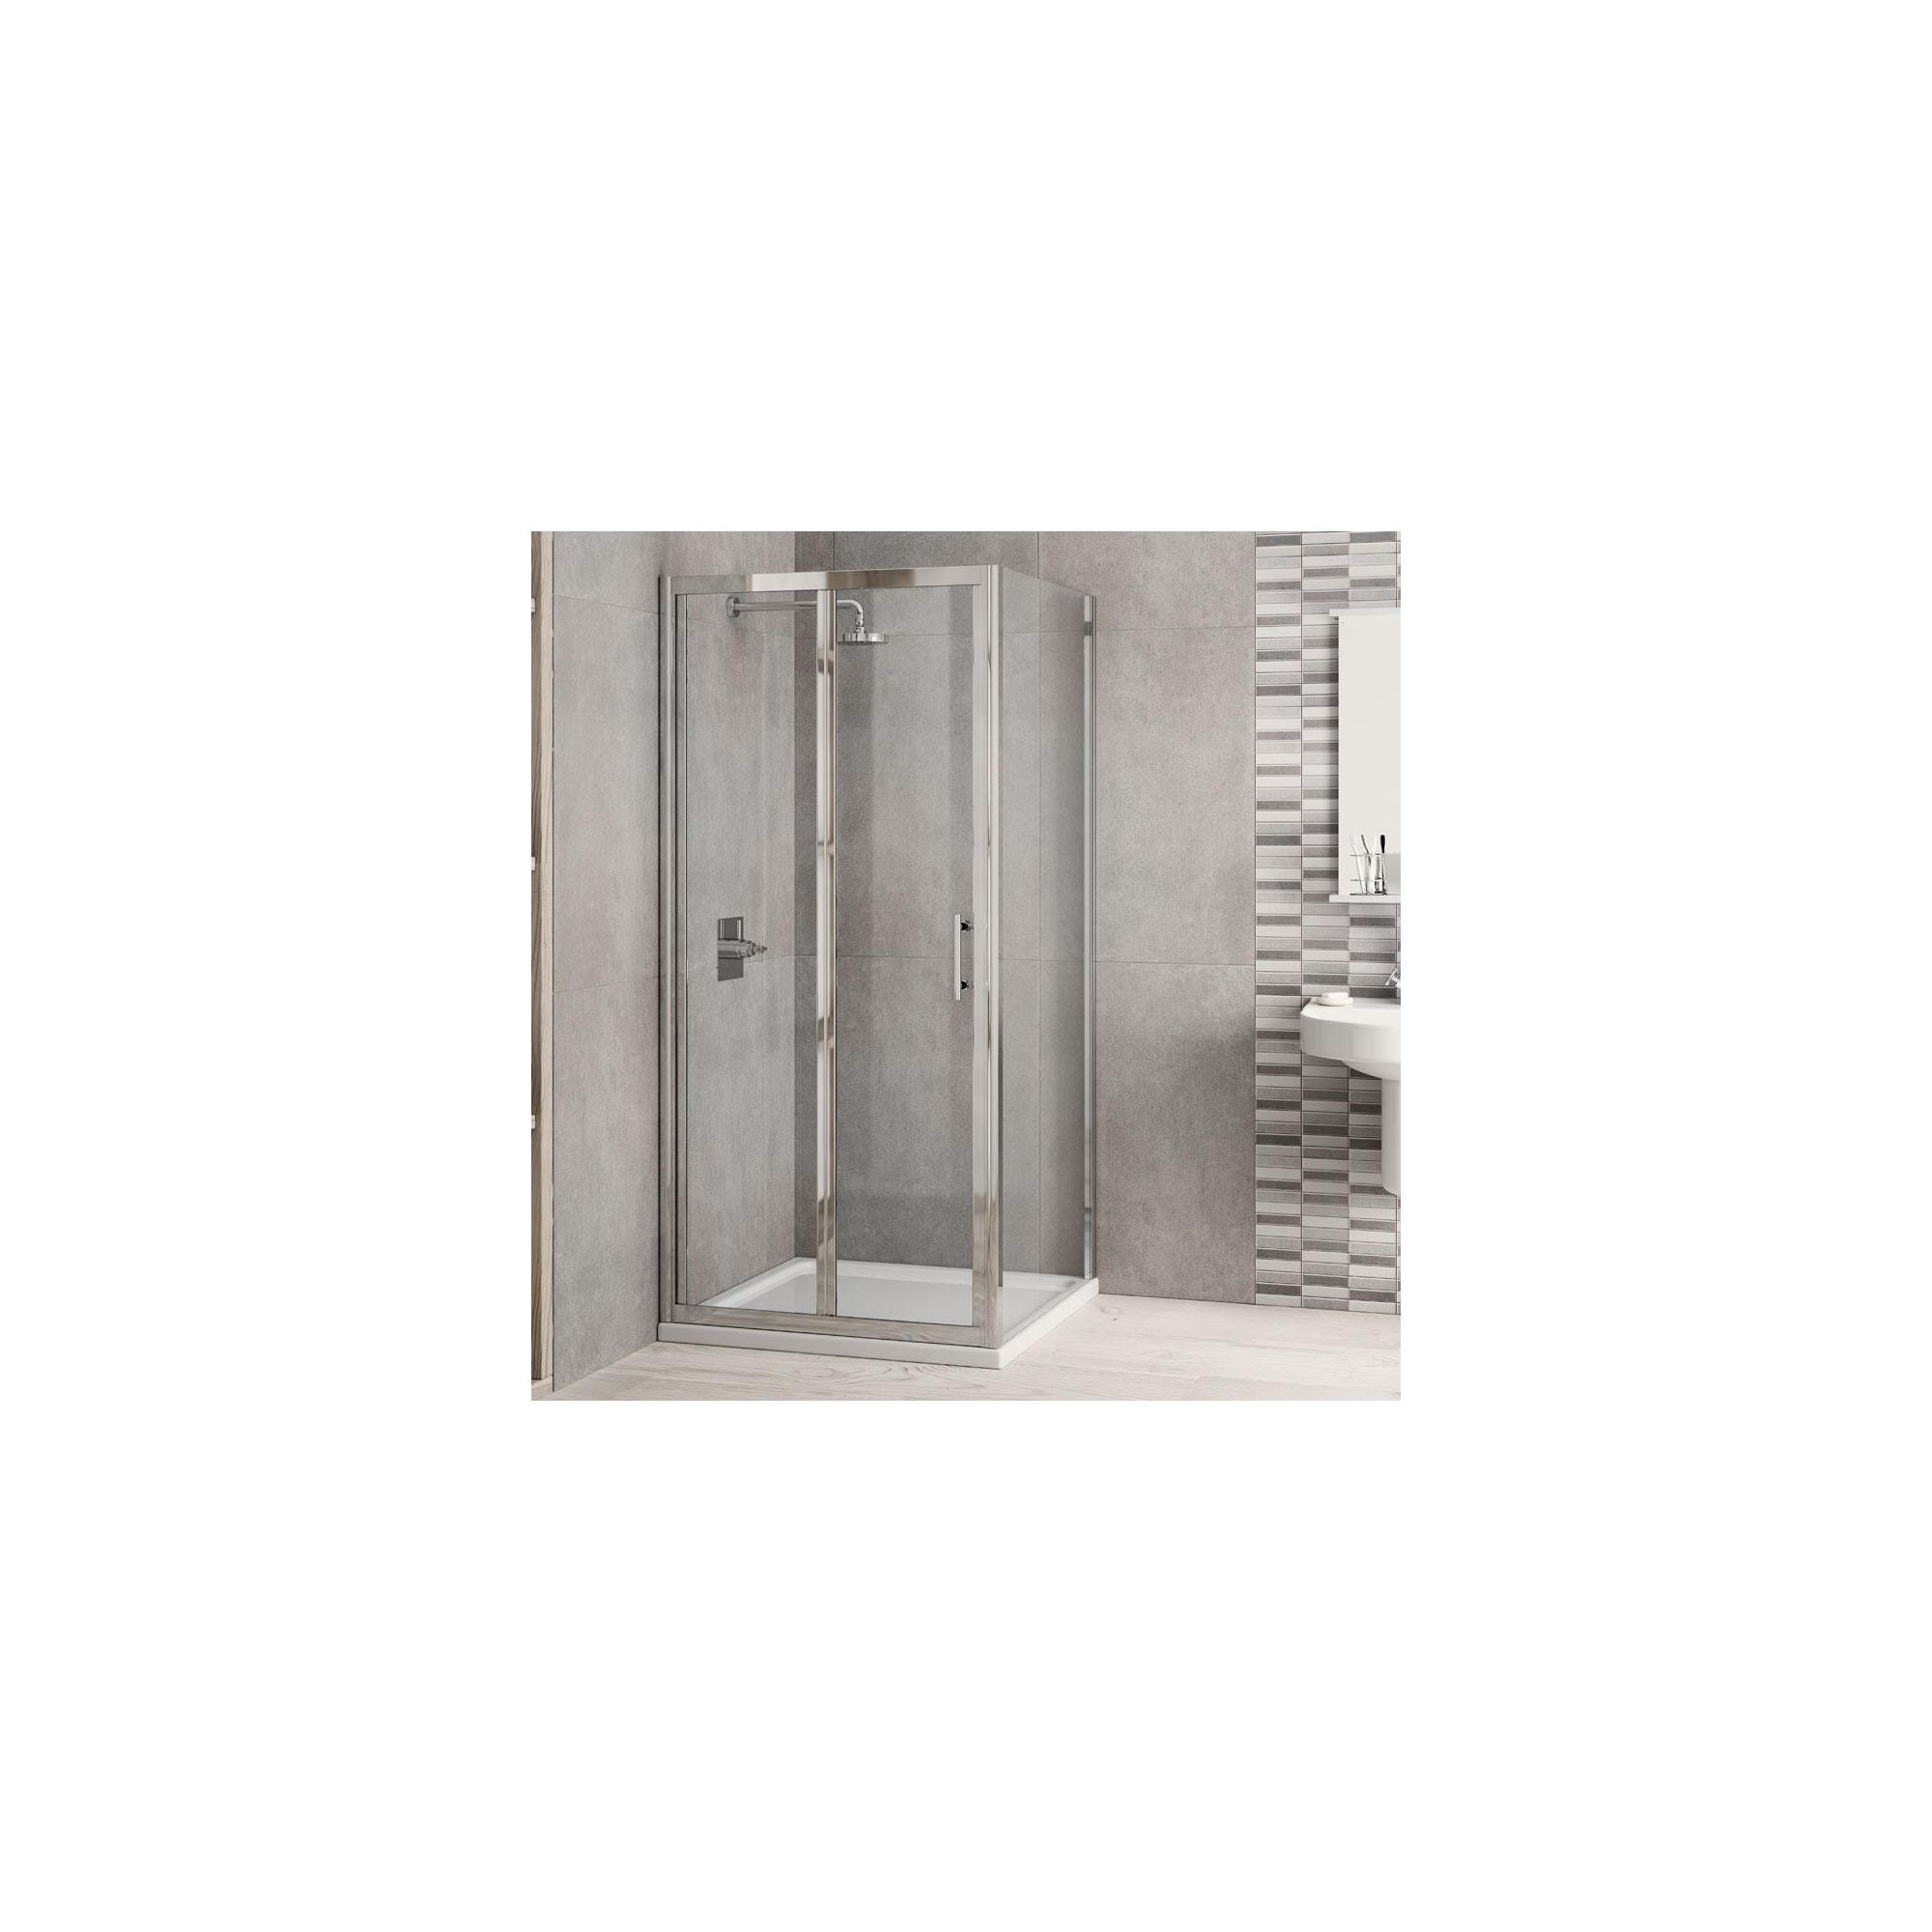 Elemis Inspire Bi-Fold Door Shower Enclosure, 760mm x 760mm, 6mm Glass, Low Profile Tray at Tesco Direct